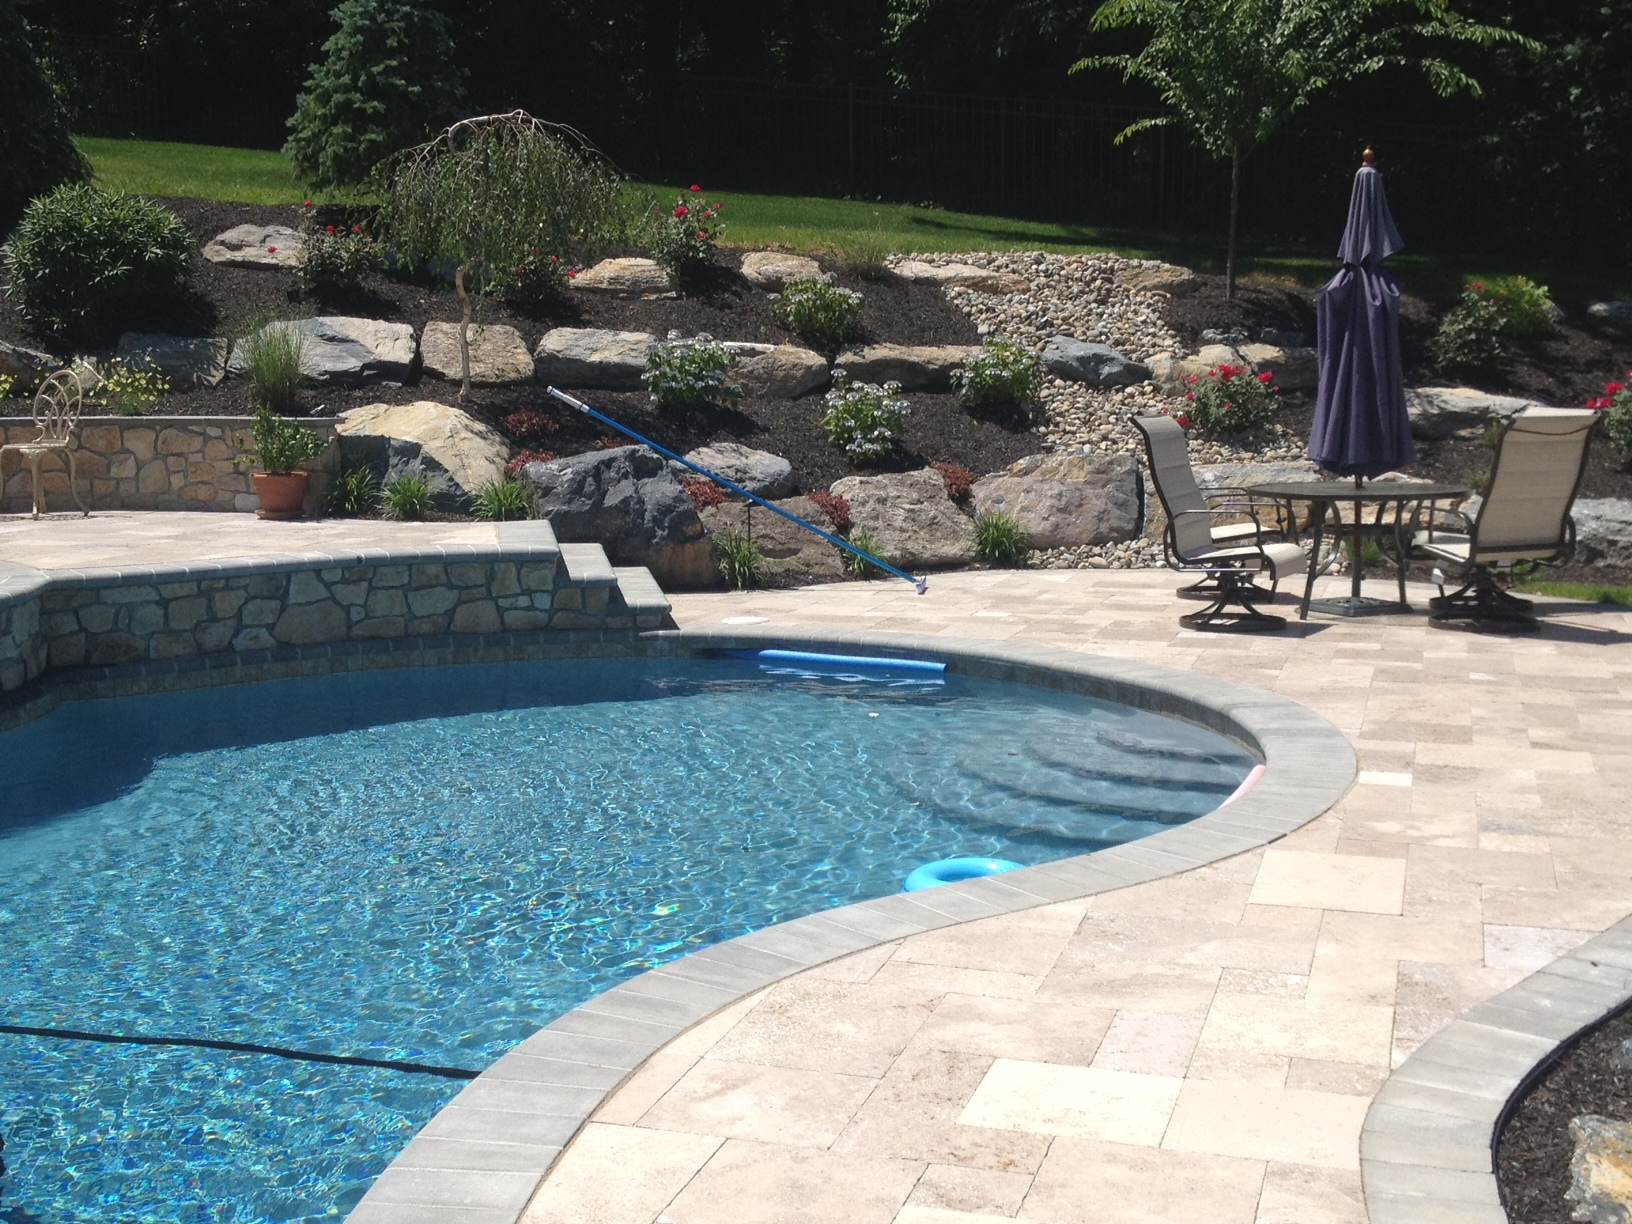 Pool Beton Swimming Pools Archive - Landscaping Company Nj & Pa